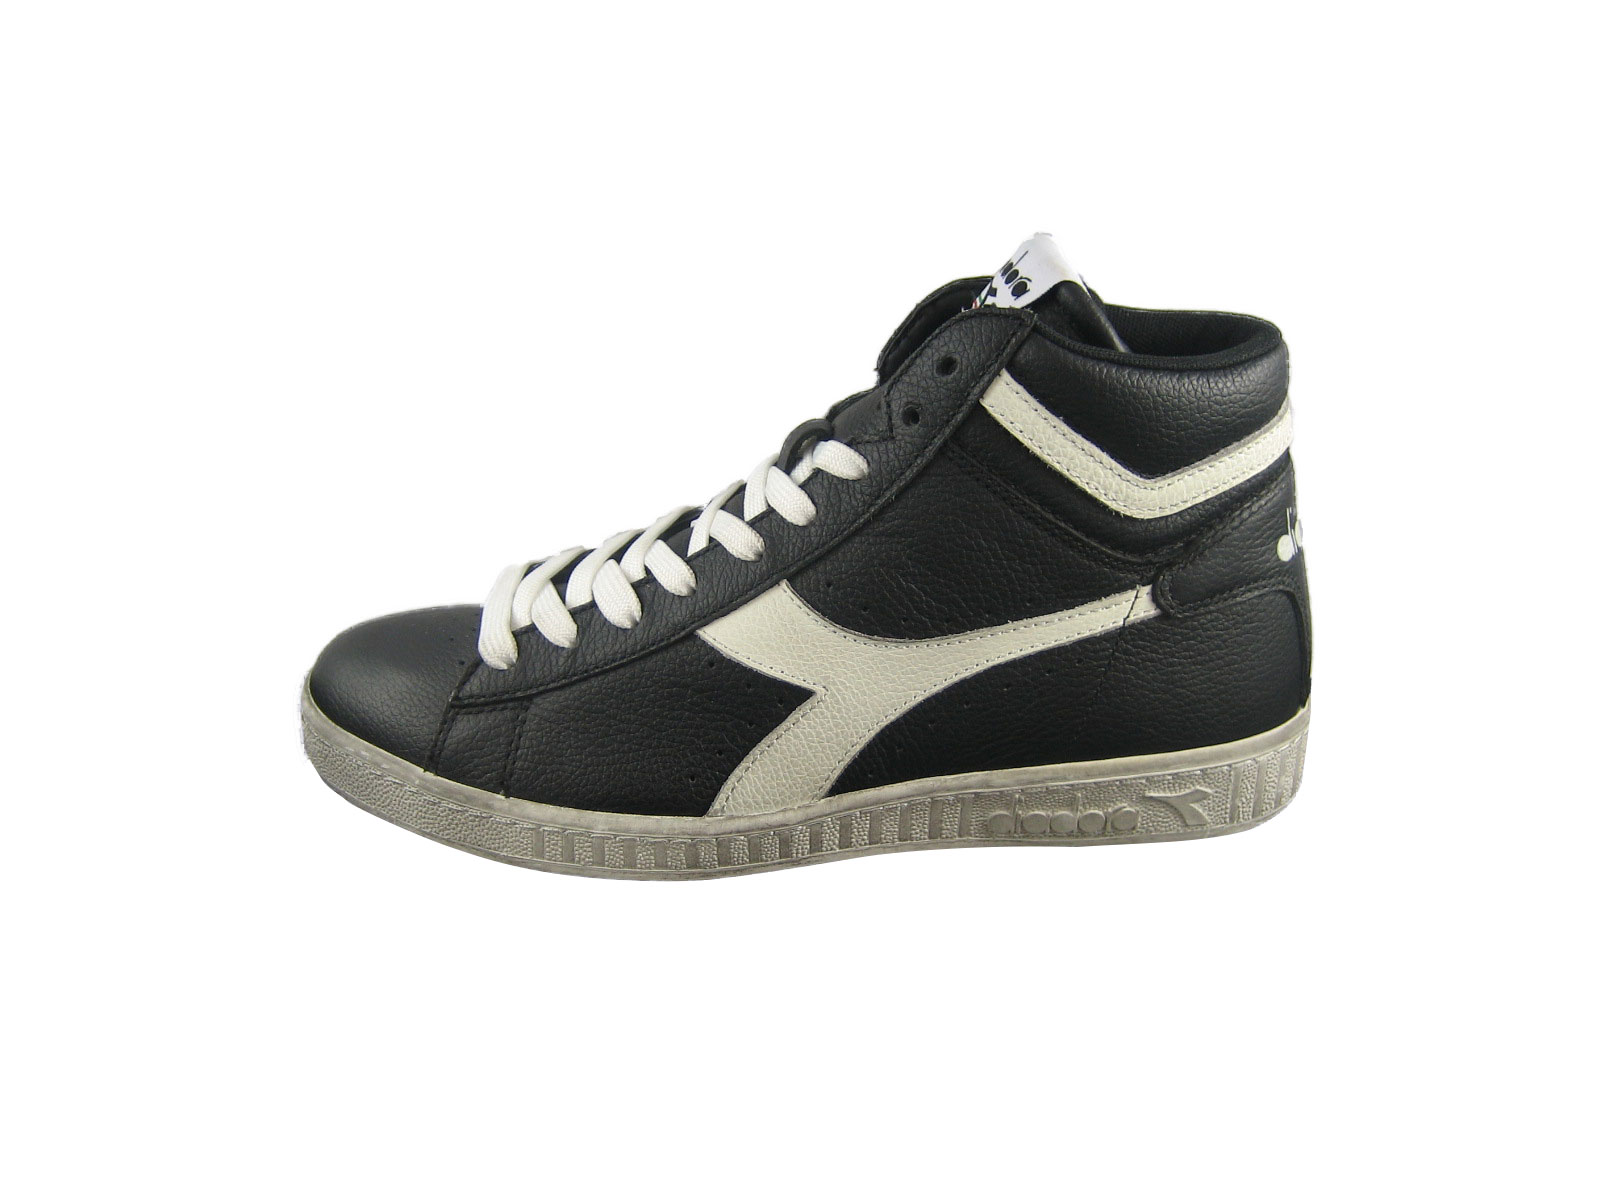 E18 Diadora Game Highpellenerobianco.jpg